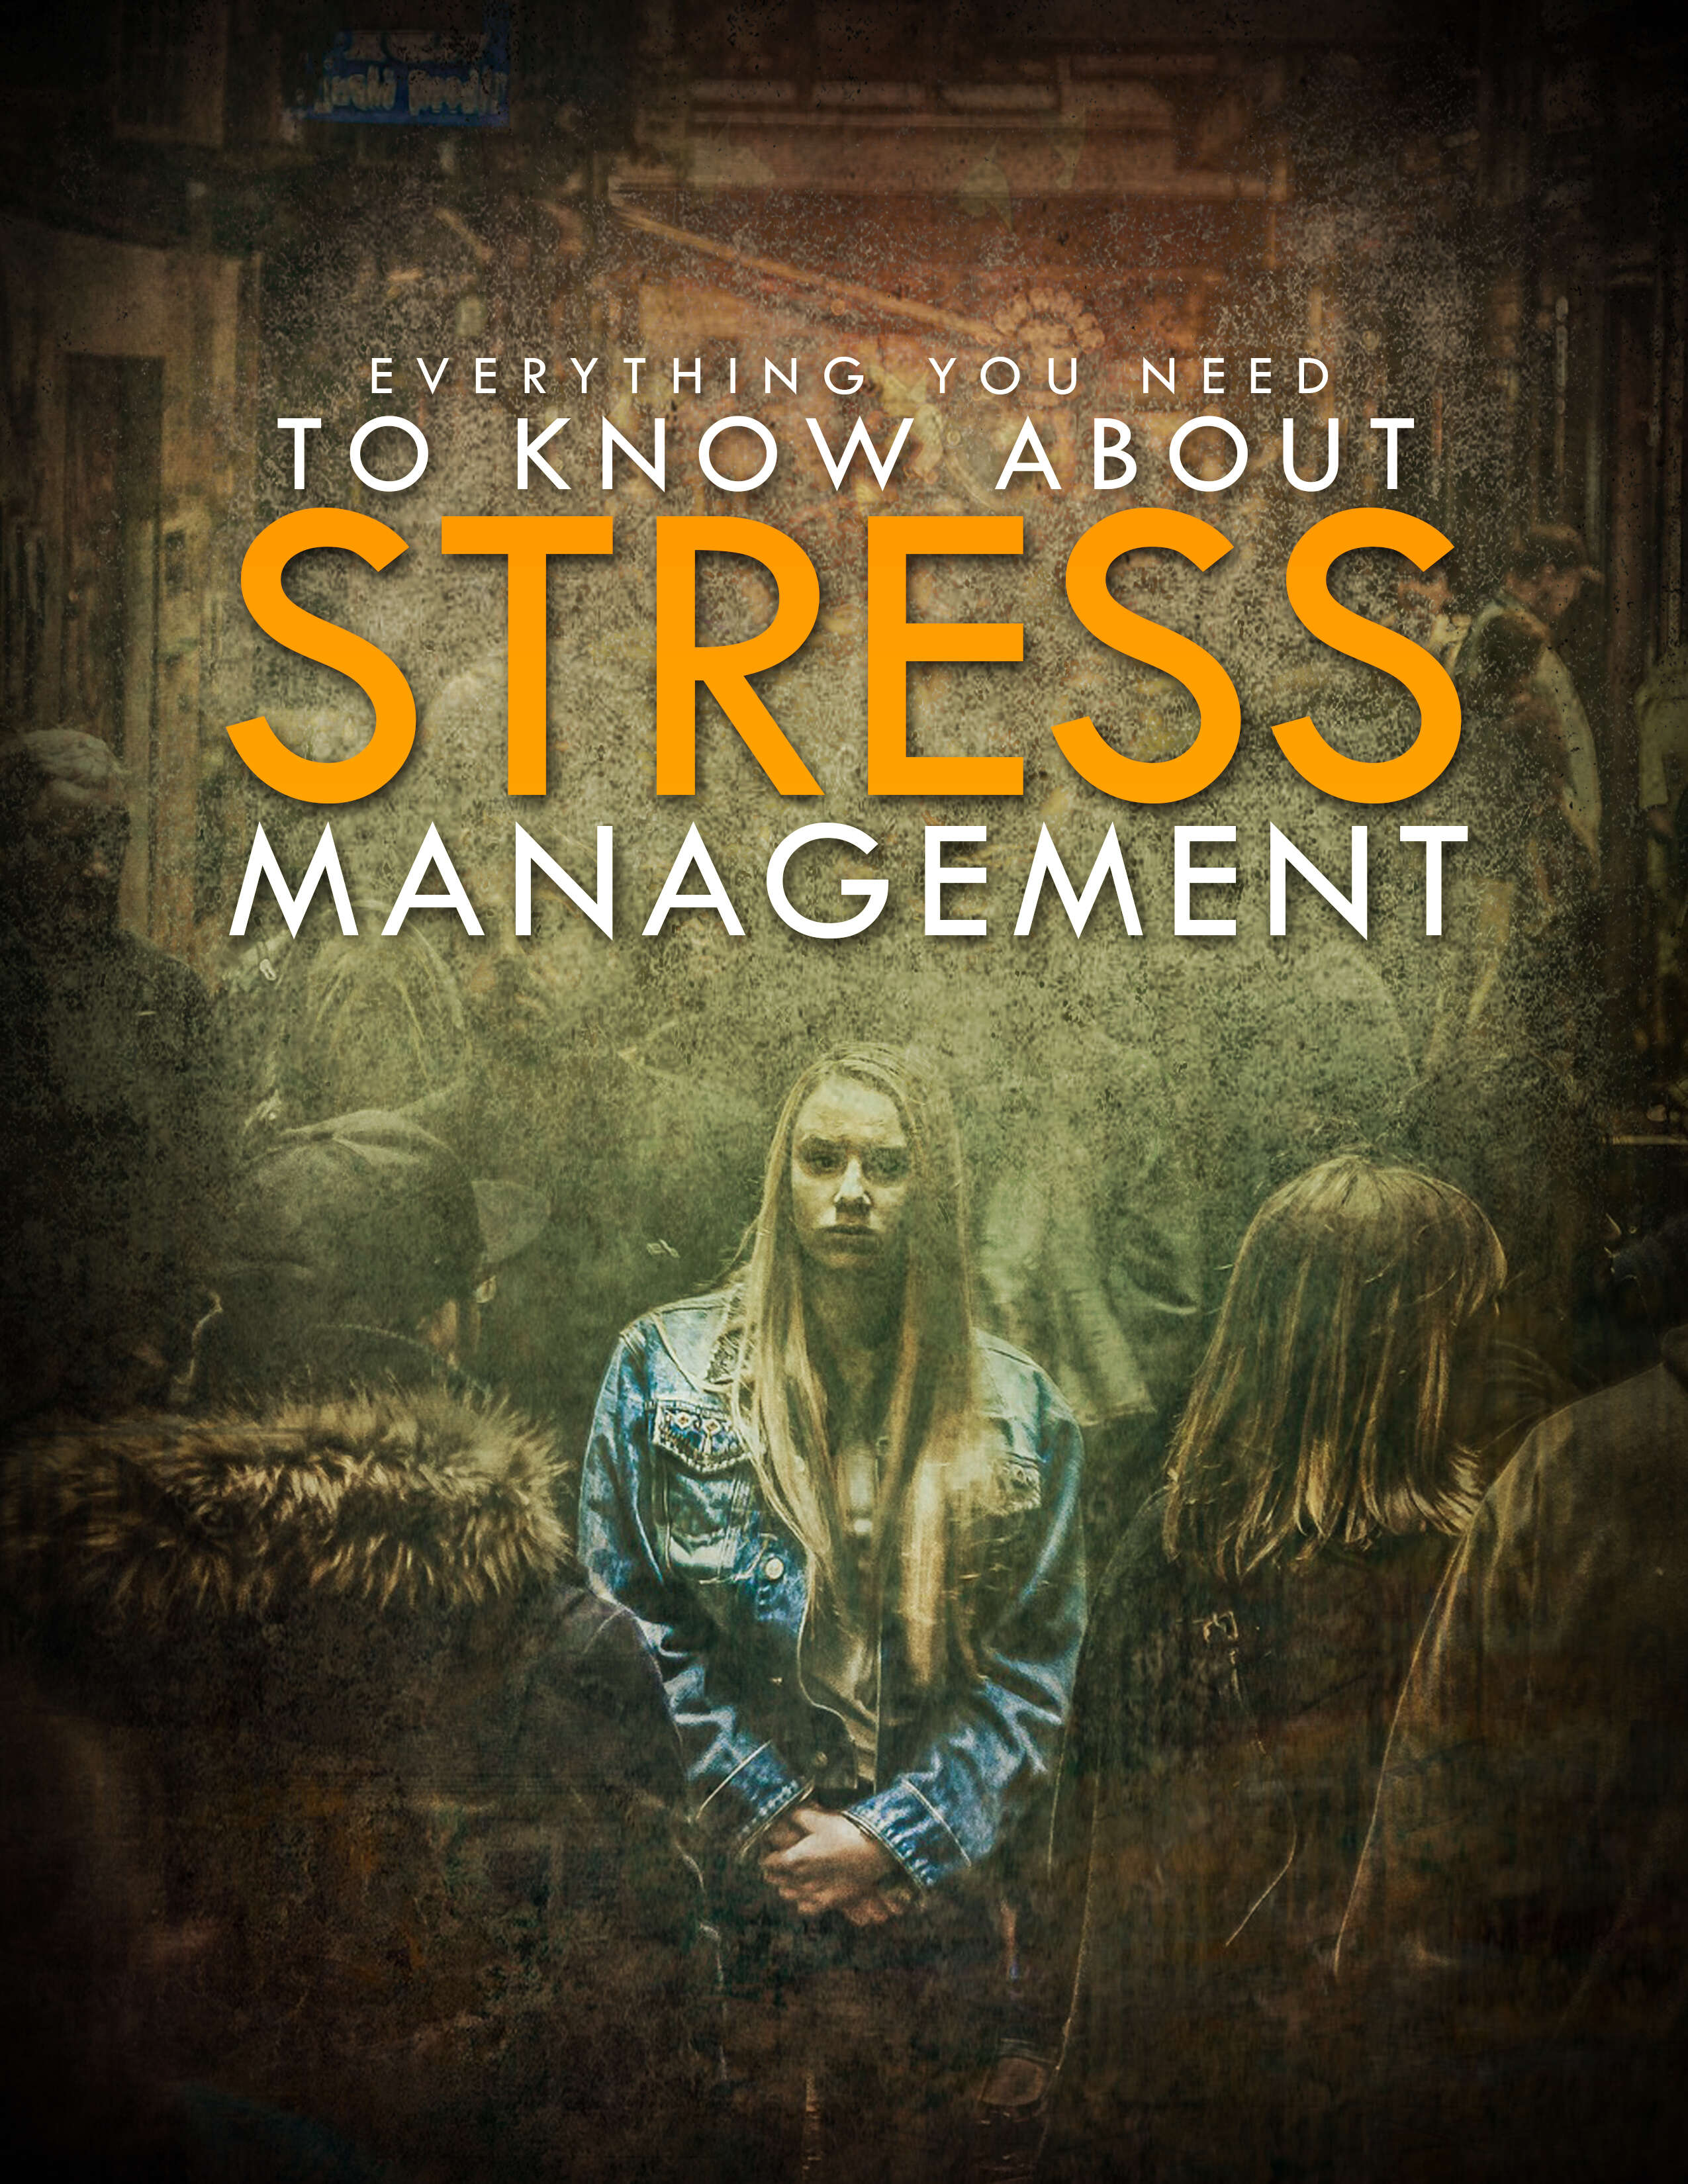 Everything You Need To Know About Stress Management Ebook's Ebook Image